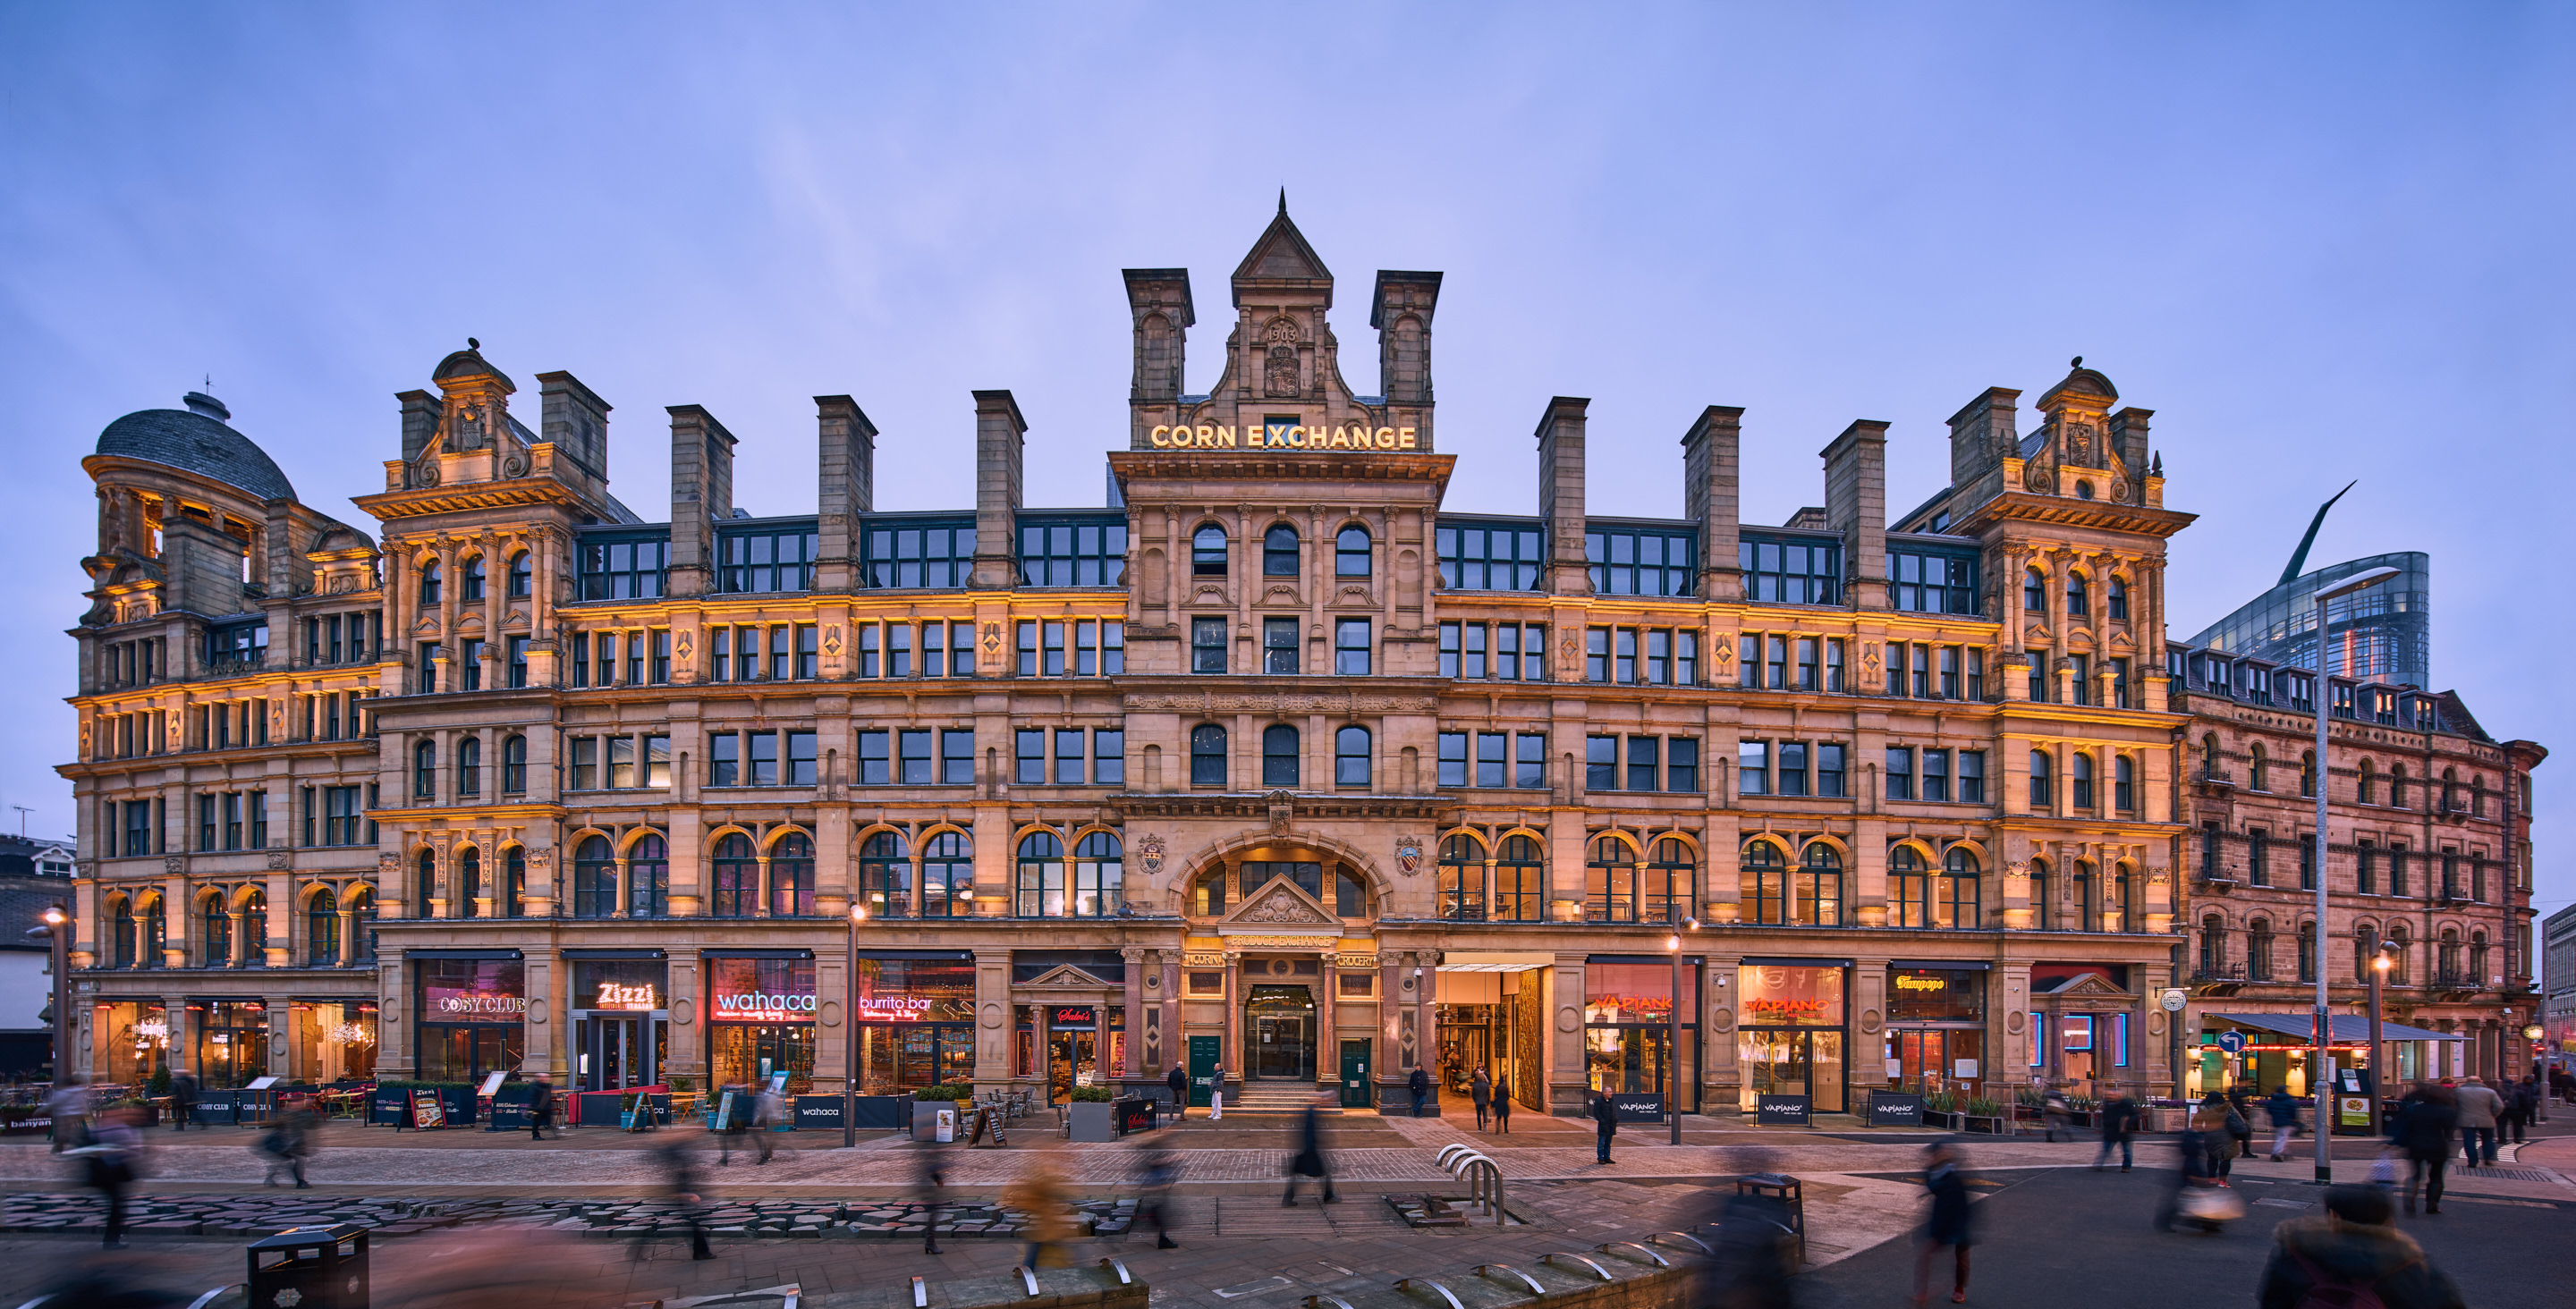 Things to do in Manchester - Corn Exchange